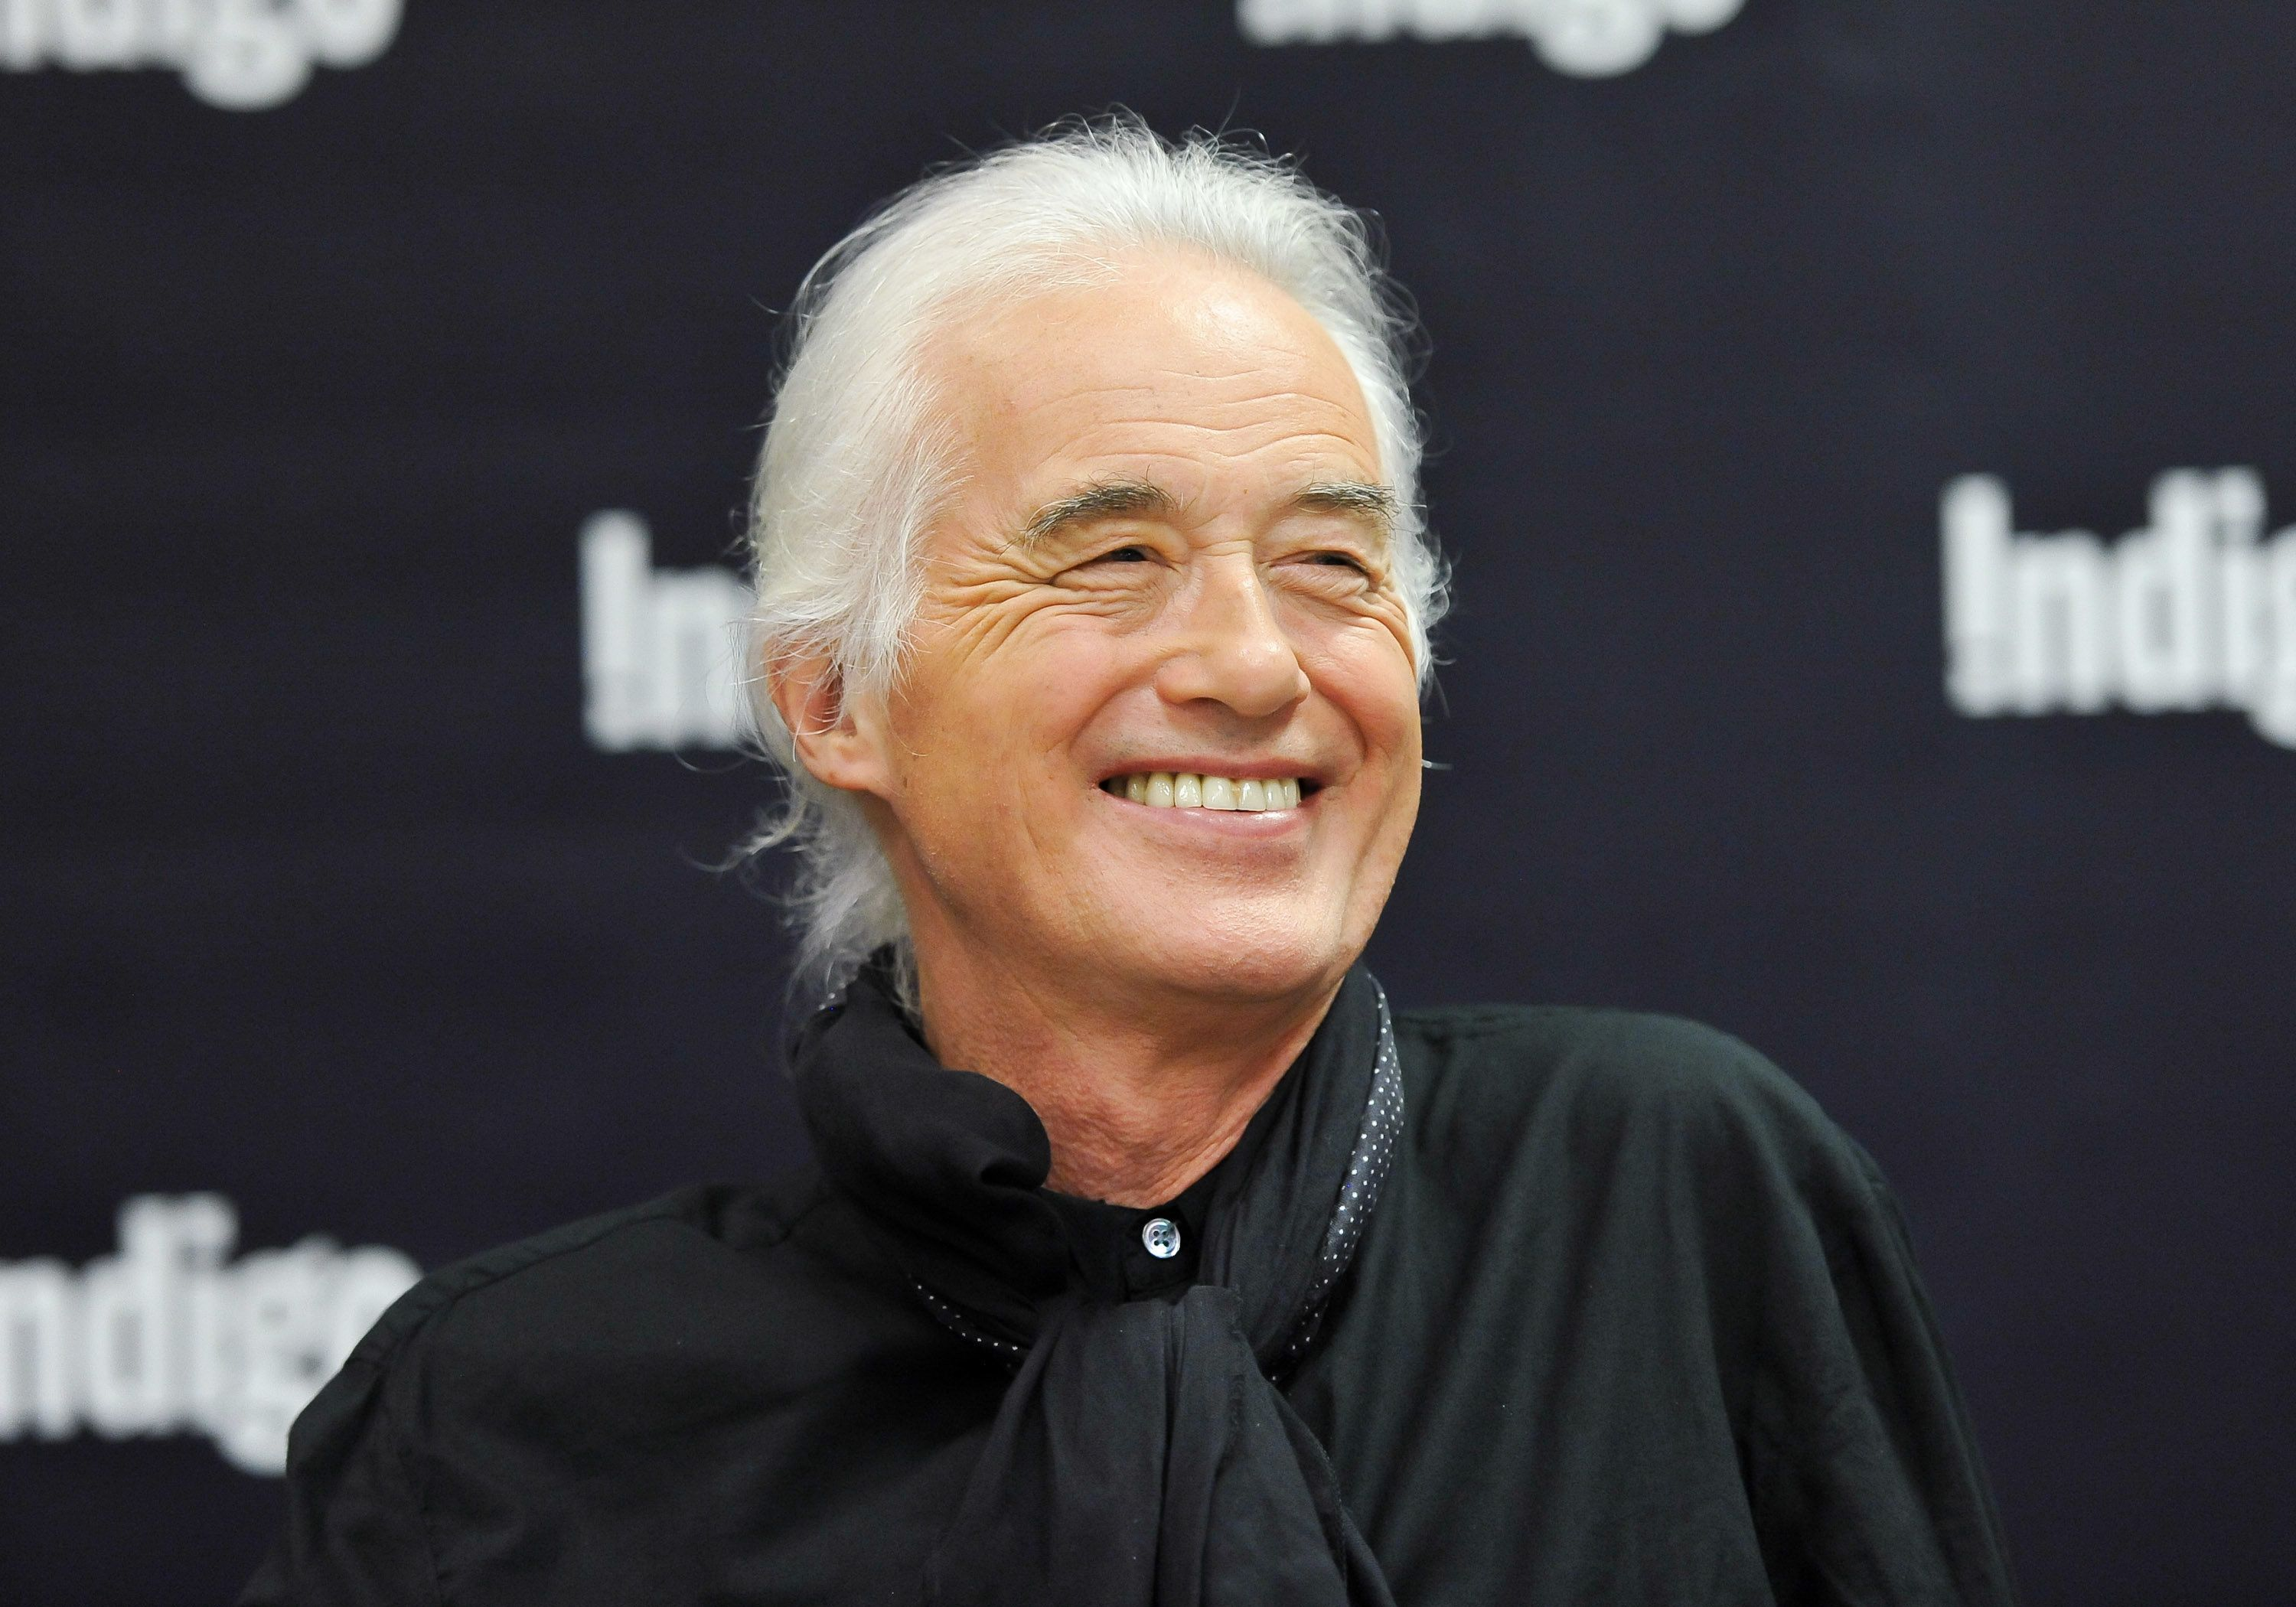 TORONTO, ON - JULY 21:  Jimmy Page signs copies of his new book 'Jimmy Page' at the Indigo Manulife Centre on July 21, 2015 in Toronto, Canada.  (Photo by George Pimentel/WireImage)